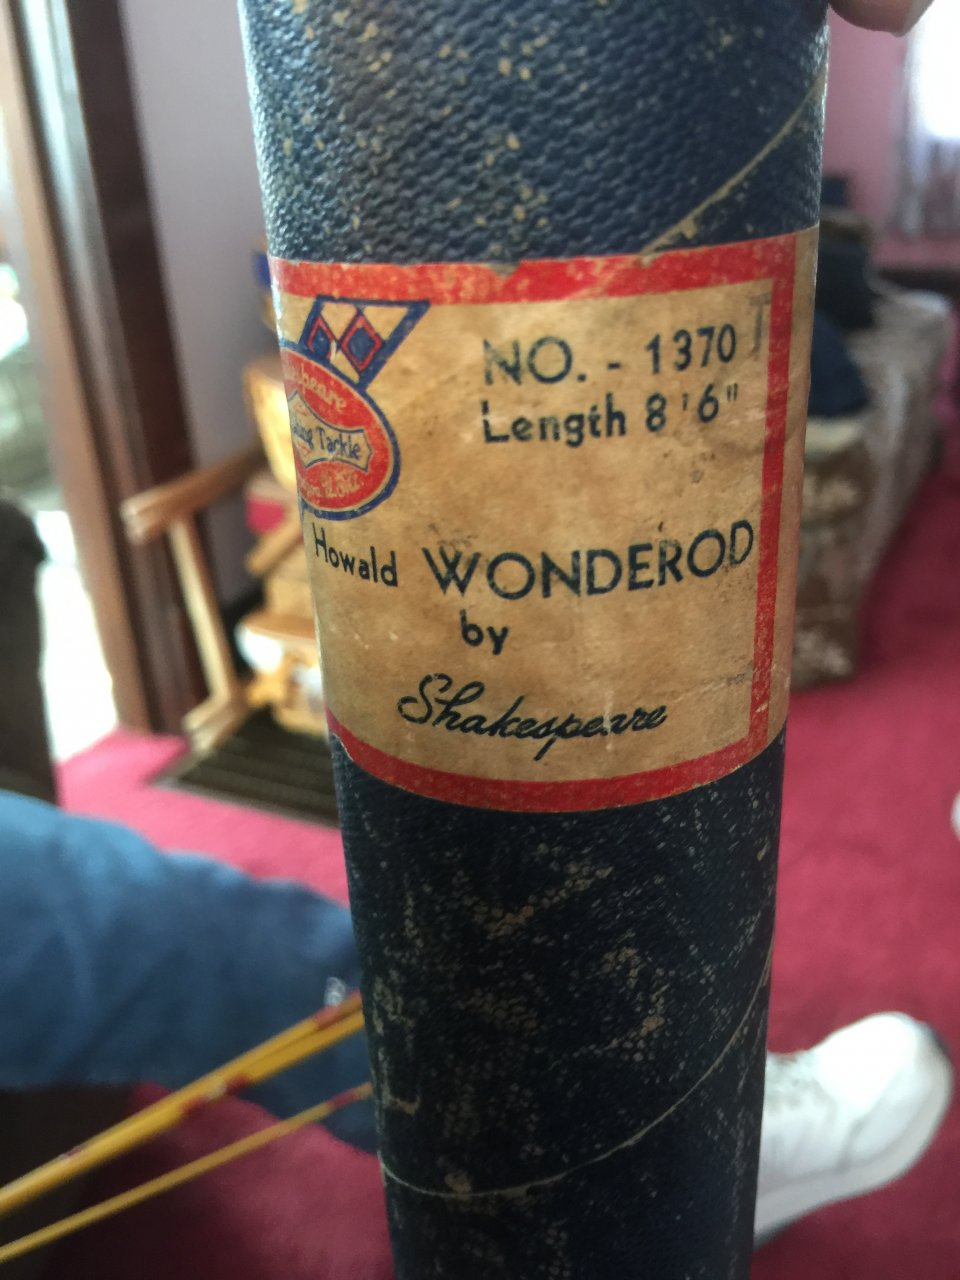 shakespeare wonderod dating New and used shakespeare wonderod items up for sale buy and sell shakespeare wonderod products on findtarget auctions online auction site.